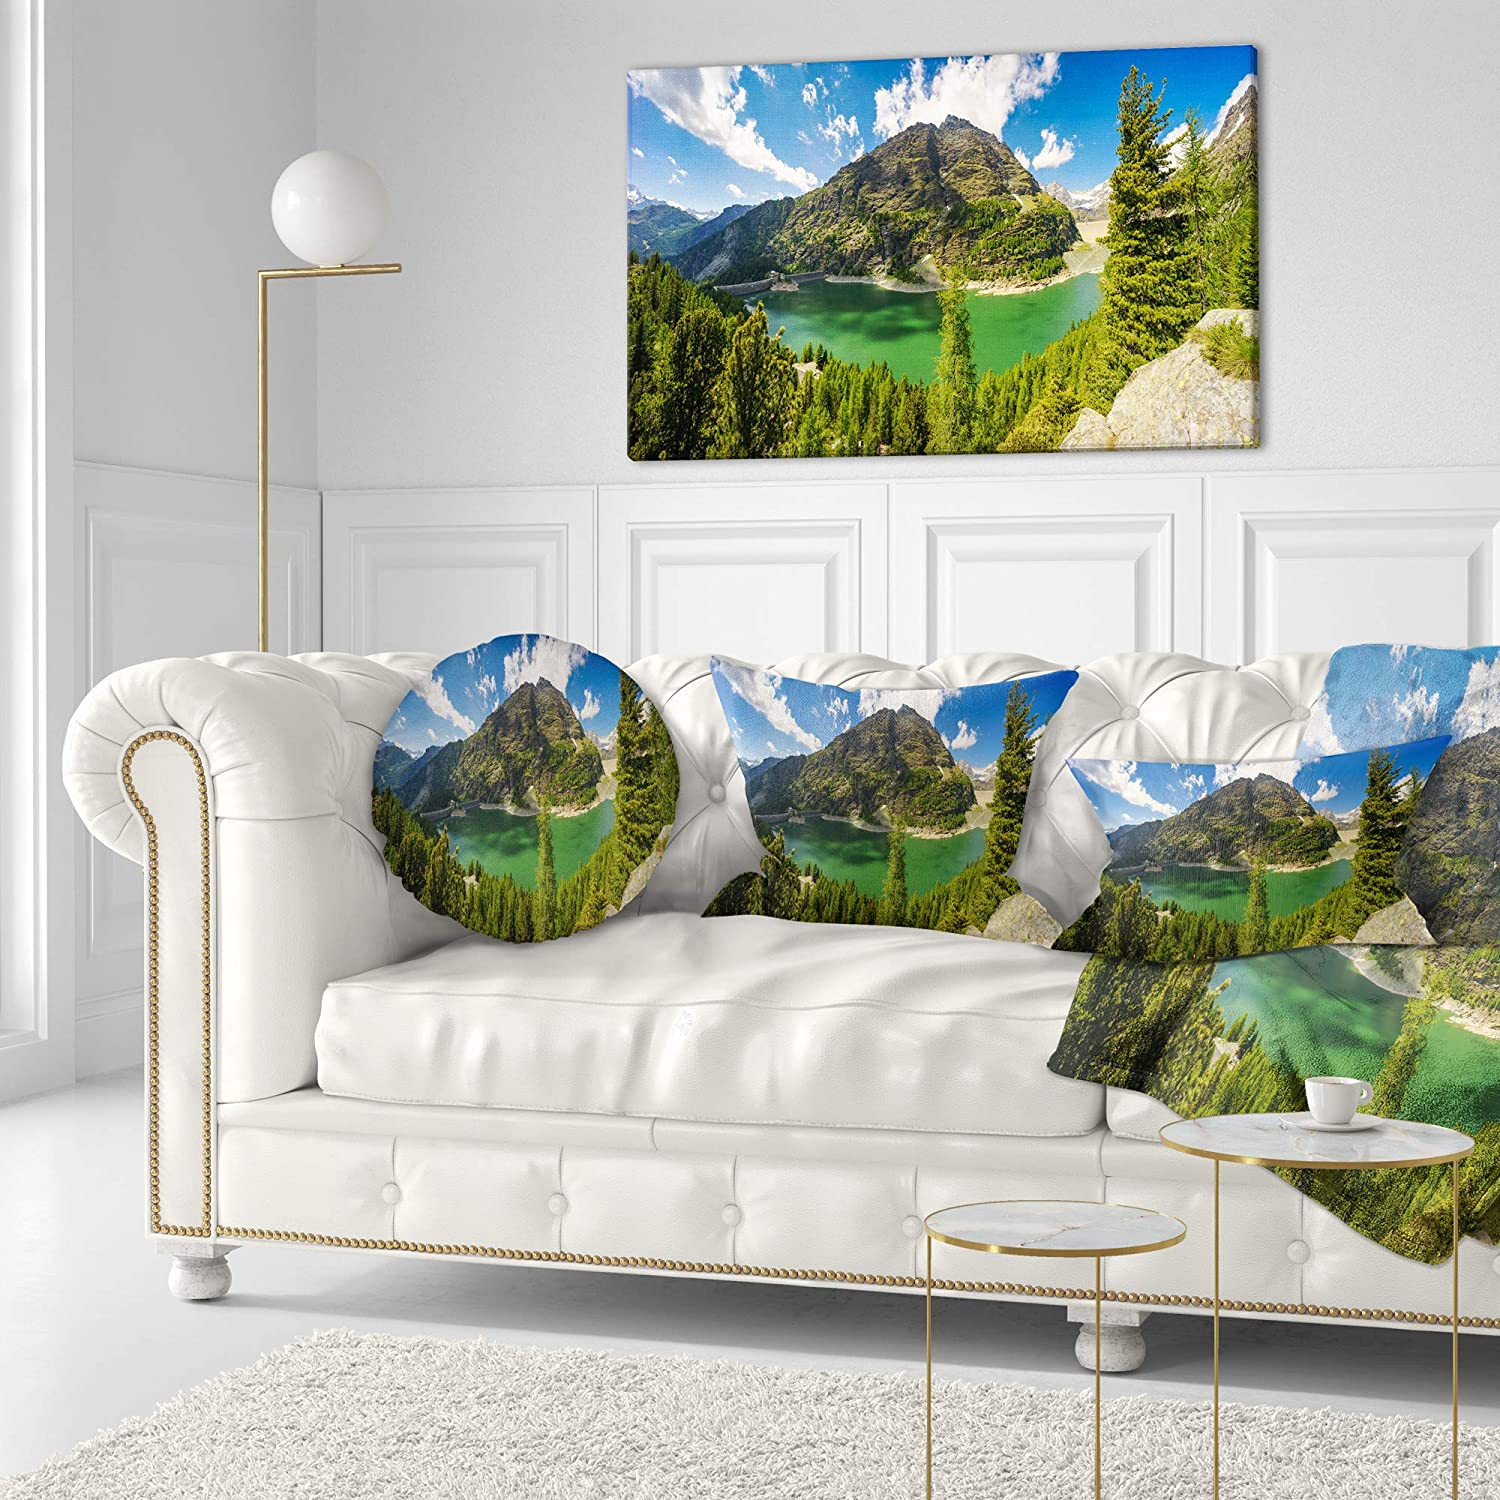 Designart CU15380-16-16-C Greeny Alpine Reservoir Landscape Printed Round Cushion Cover for Living Room Sofa Throw Pillow 16 Insert Side